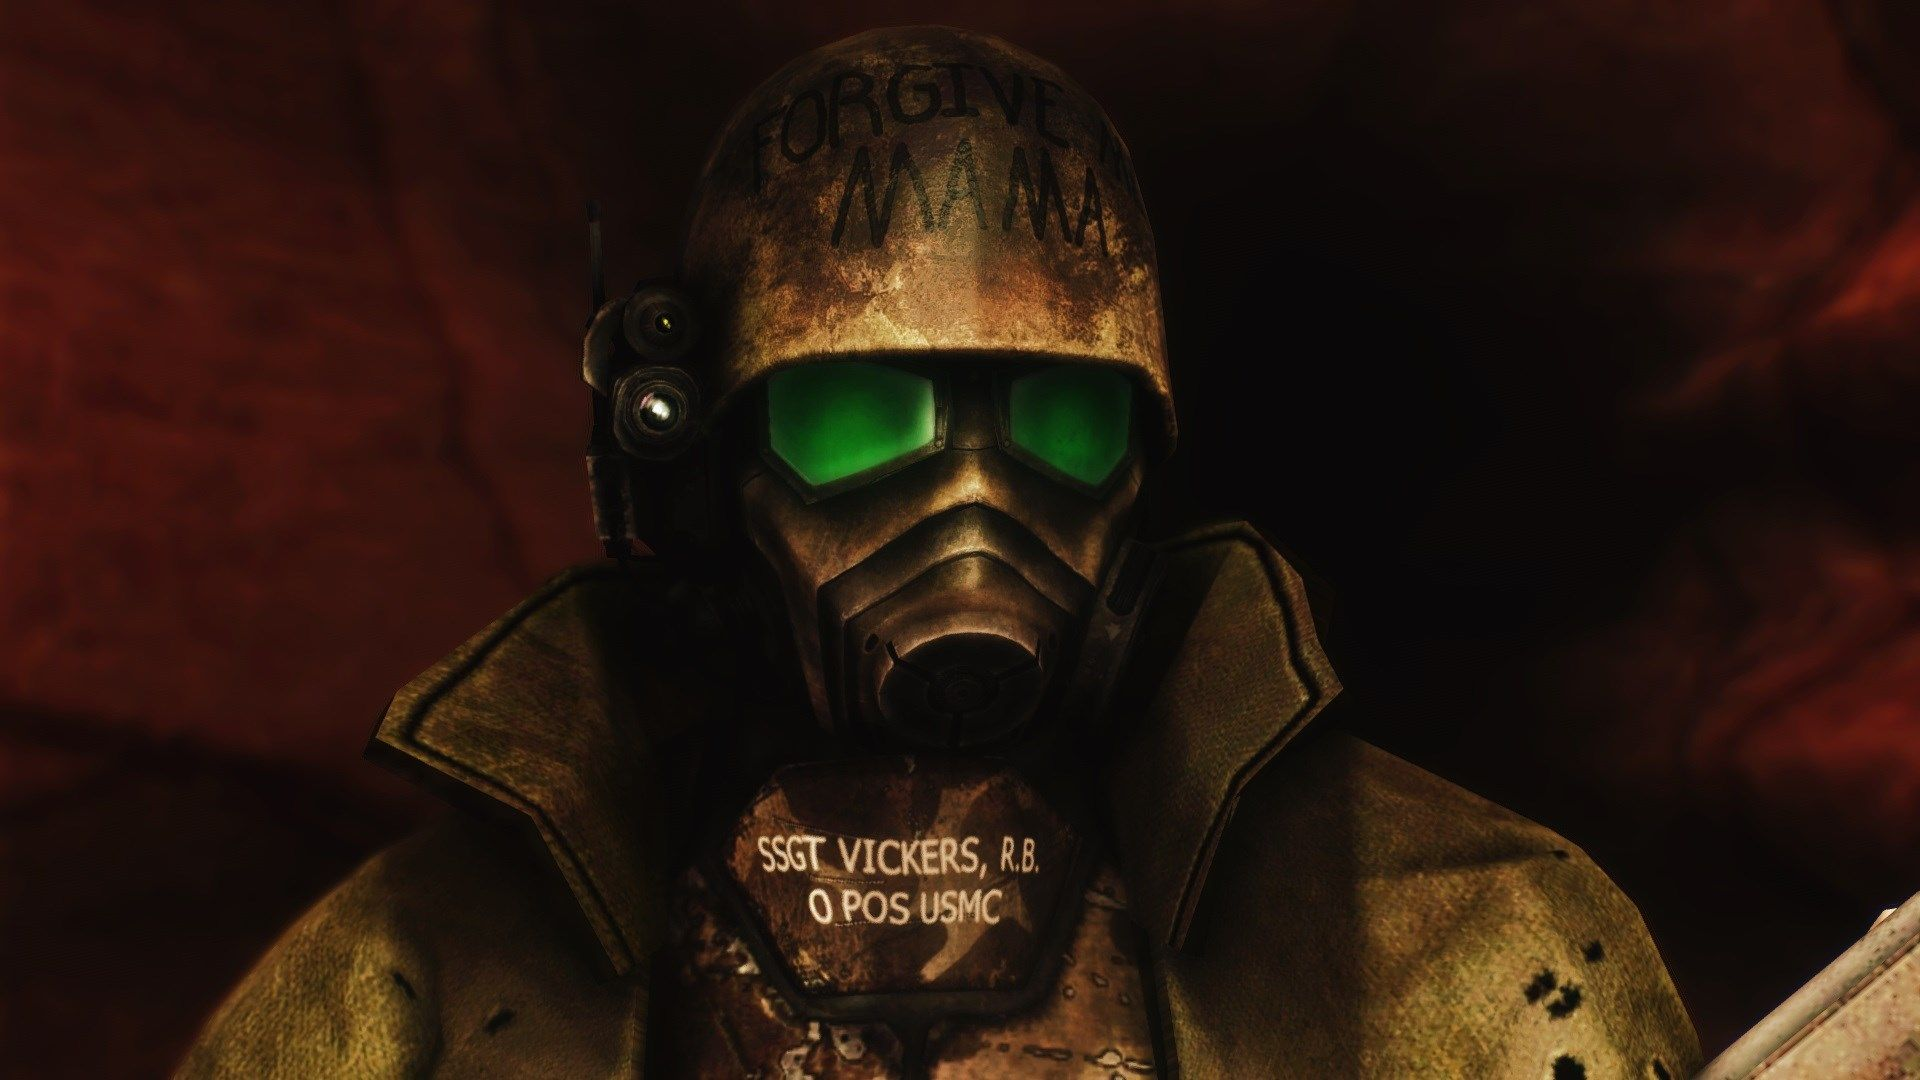 Free High Resolution Wallpaper Fallout New Vegas Collier Cook 1920x1080